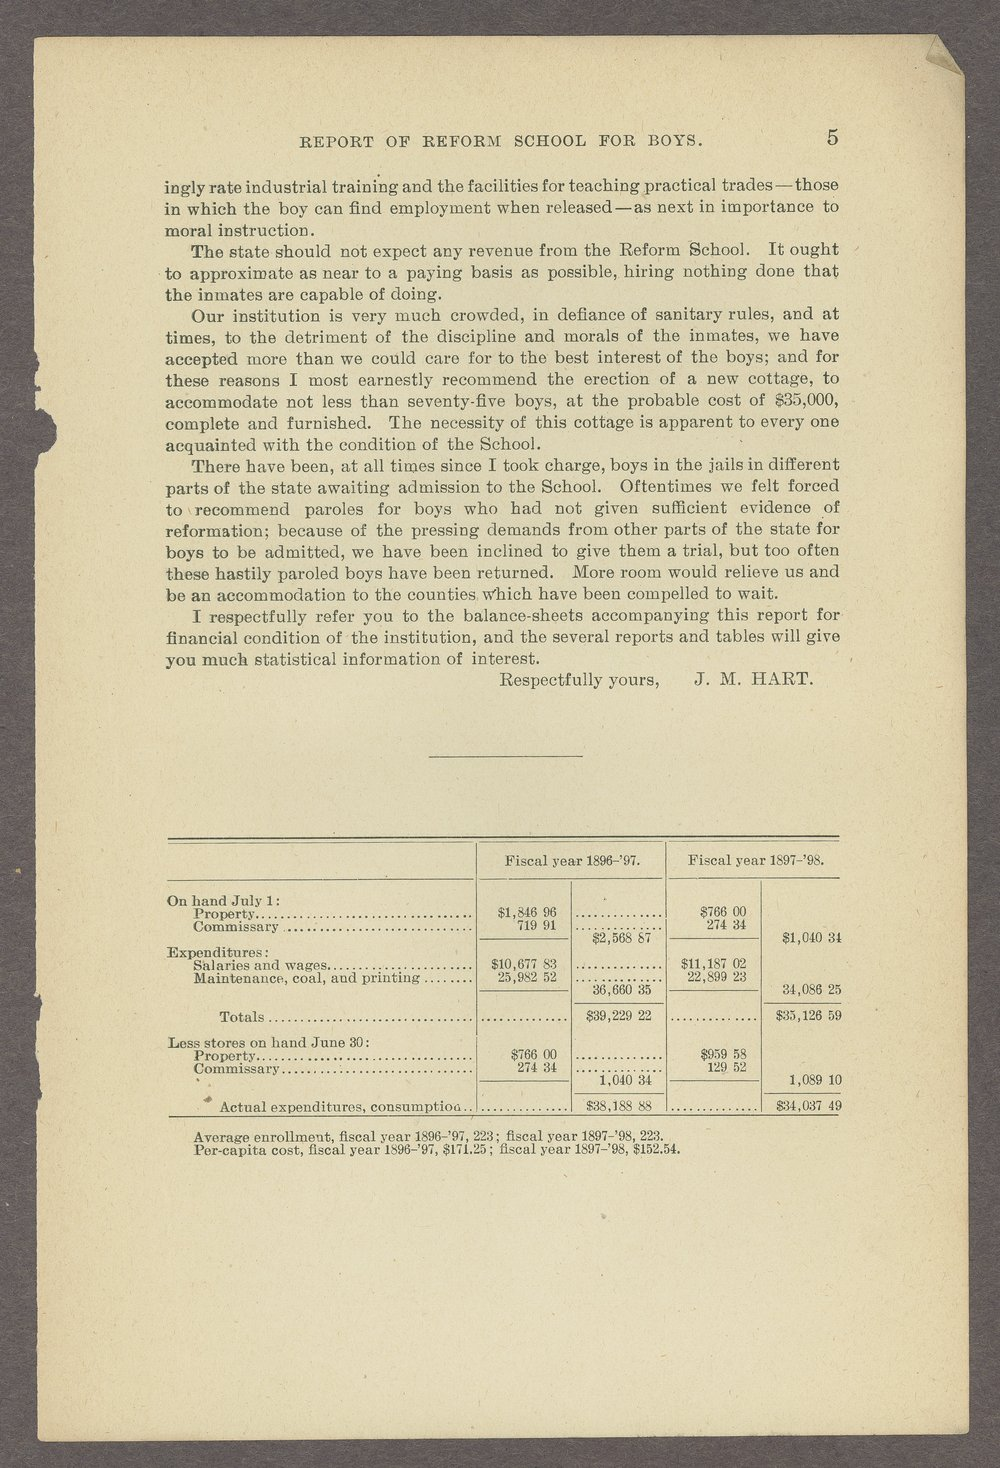 Biennial report of the State Reform School,1898 - 5